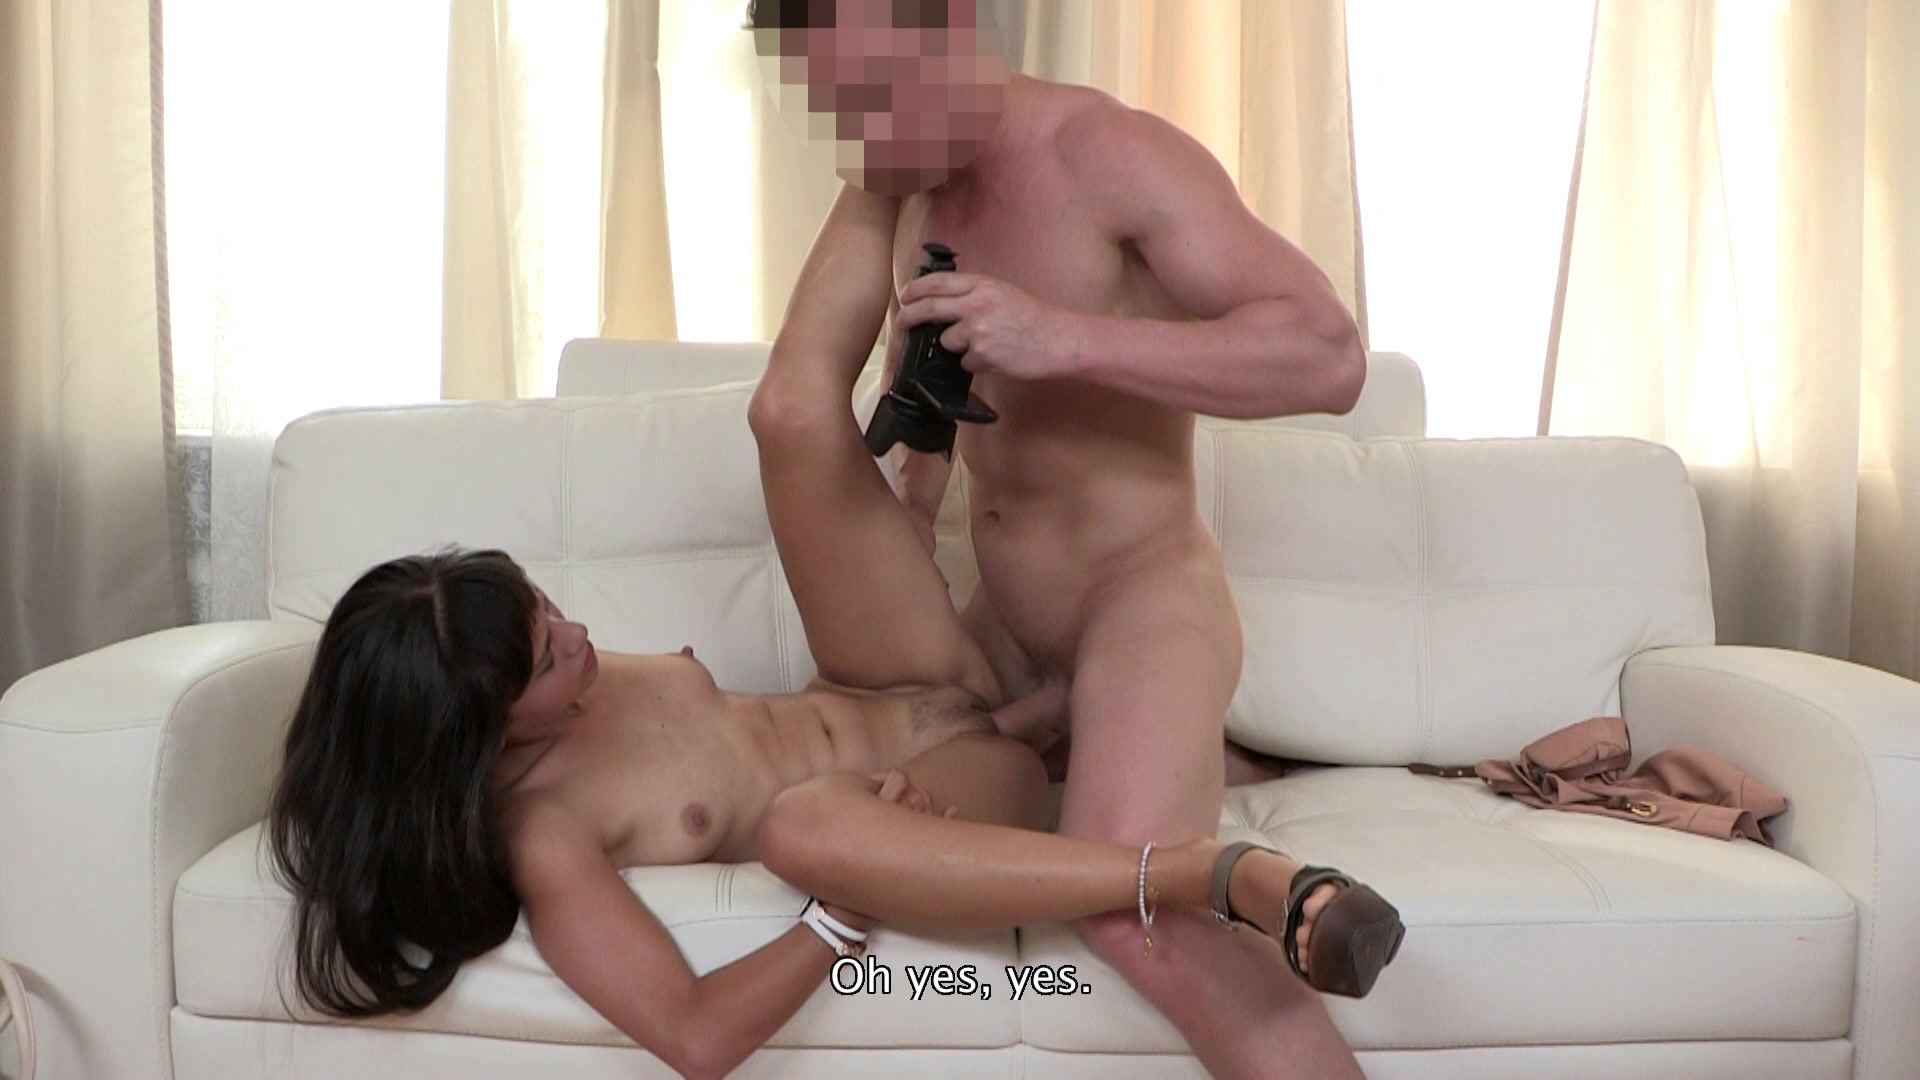 Sunset Media, Amateurs, Barebacking, Blowjobs, European, Gonzo, Web Amateur